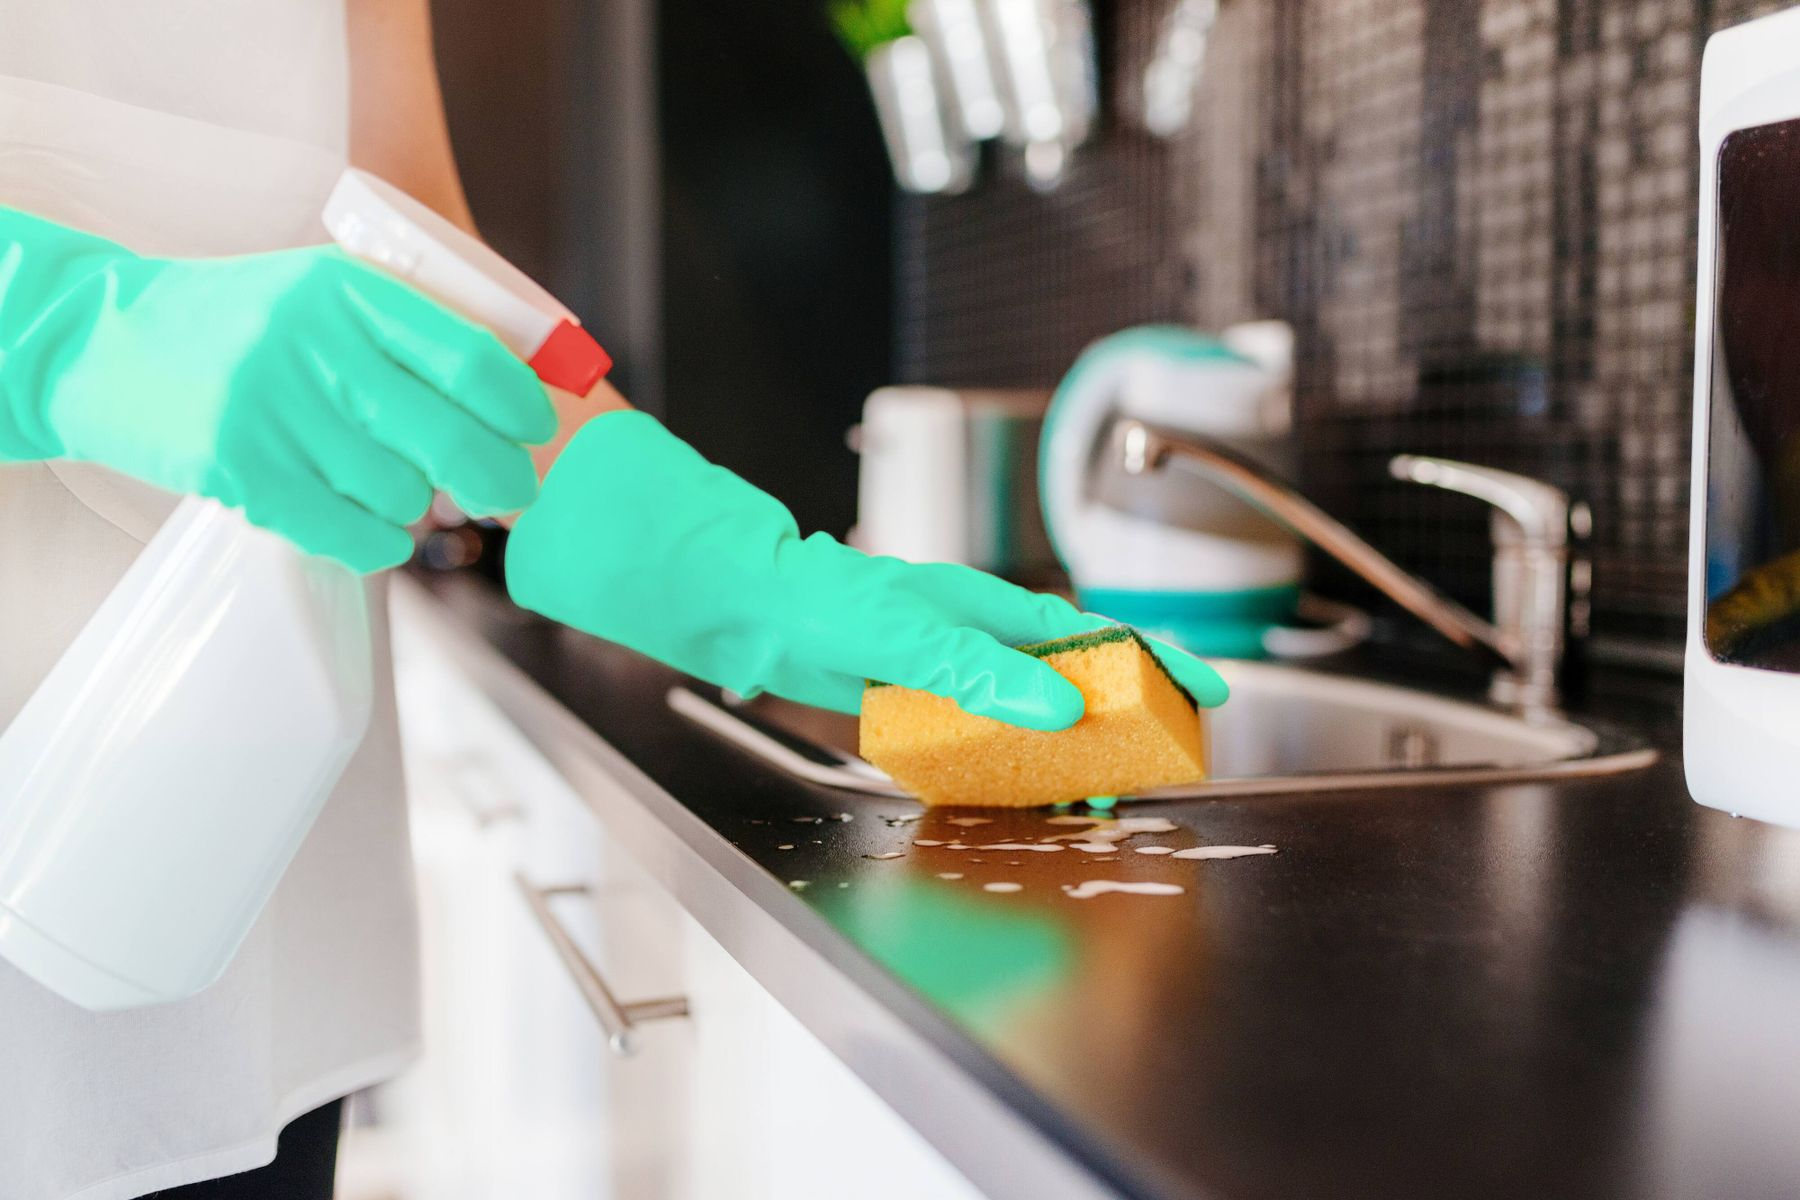 a person cleaning the kitchen counter